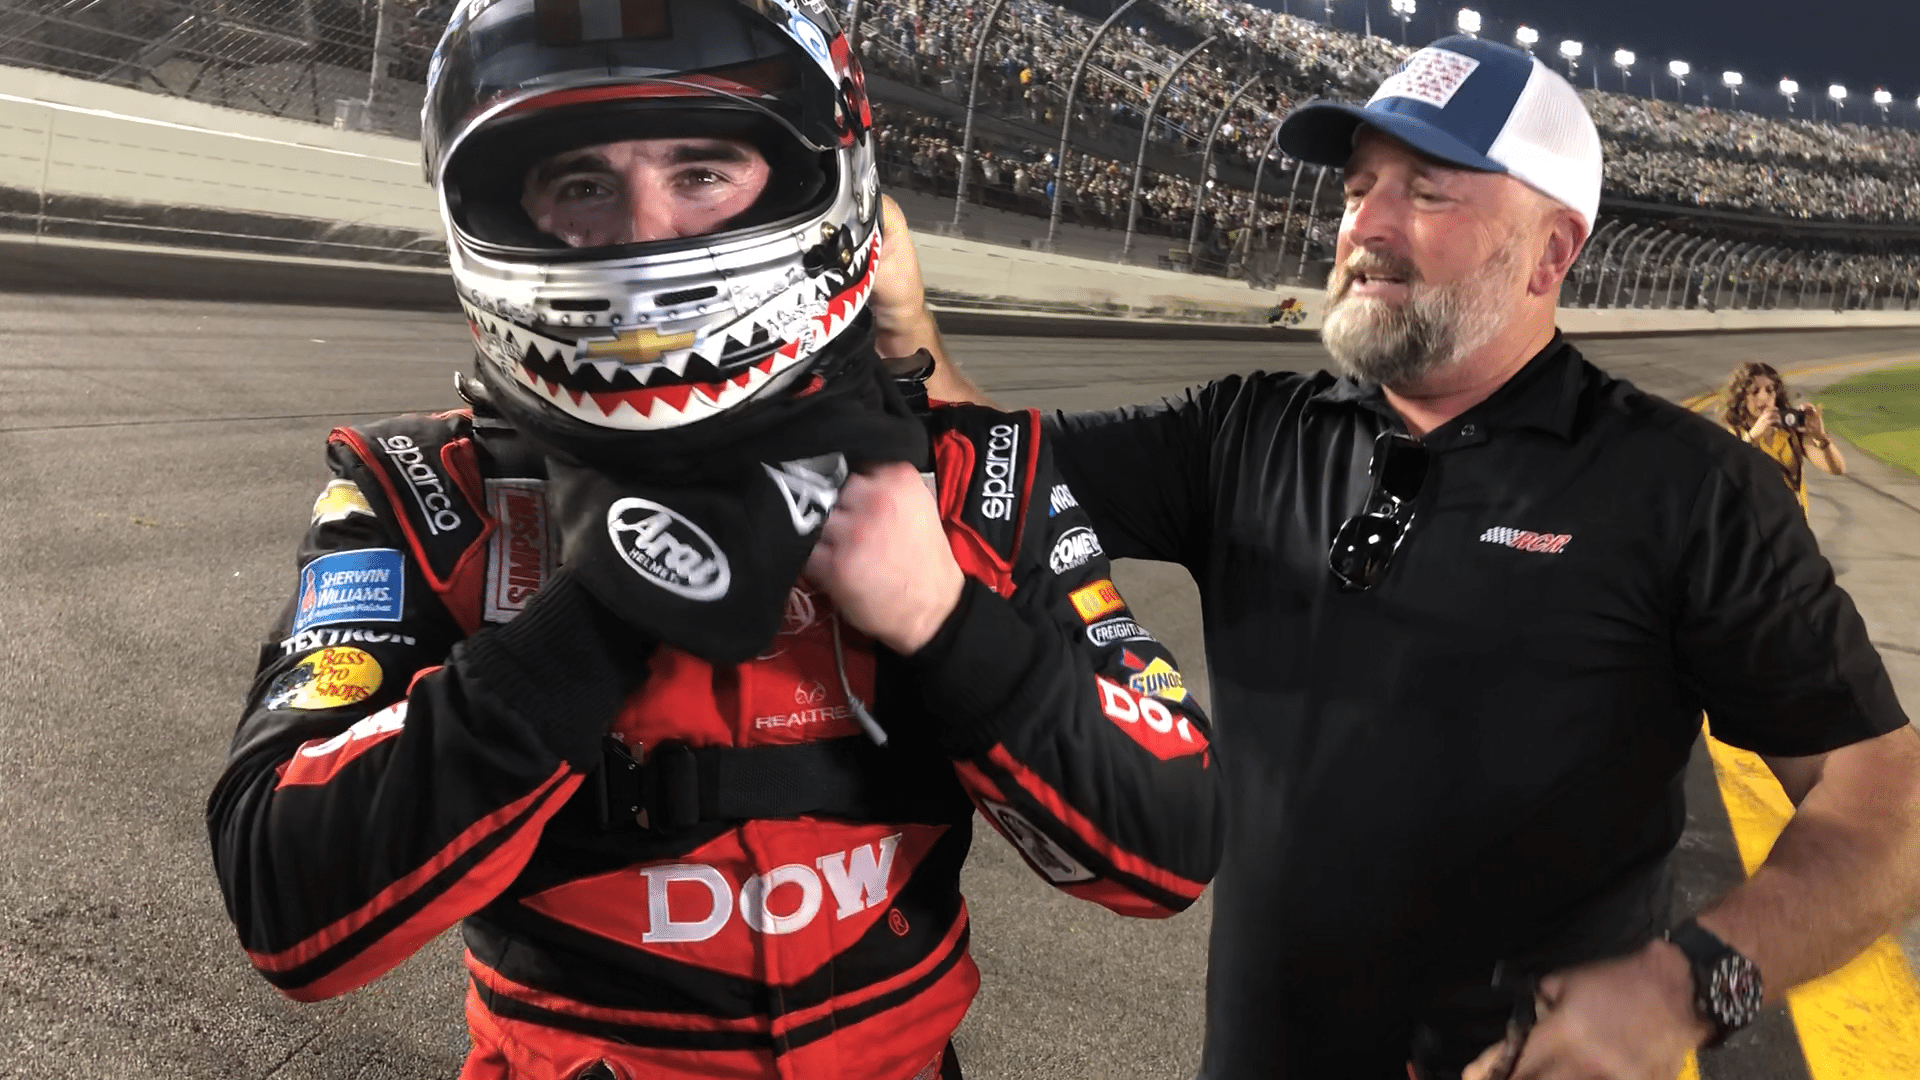 Celebration of a Lifetime. Relive the Moment Austin Dillon Won the Daytona 500